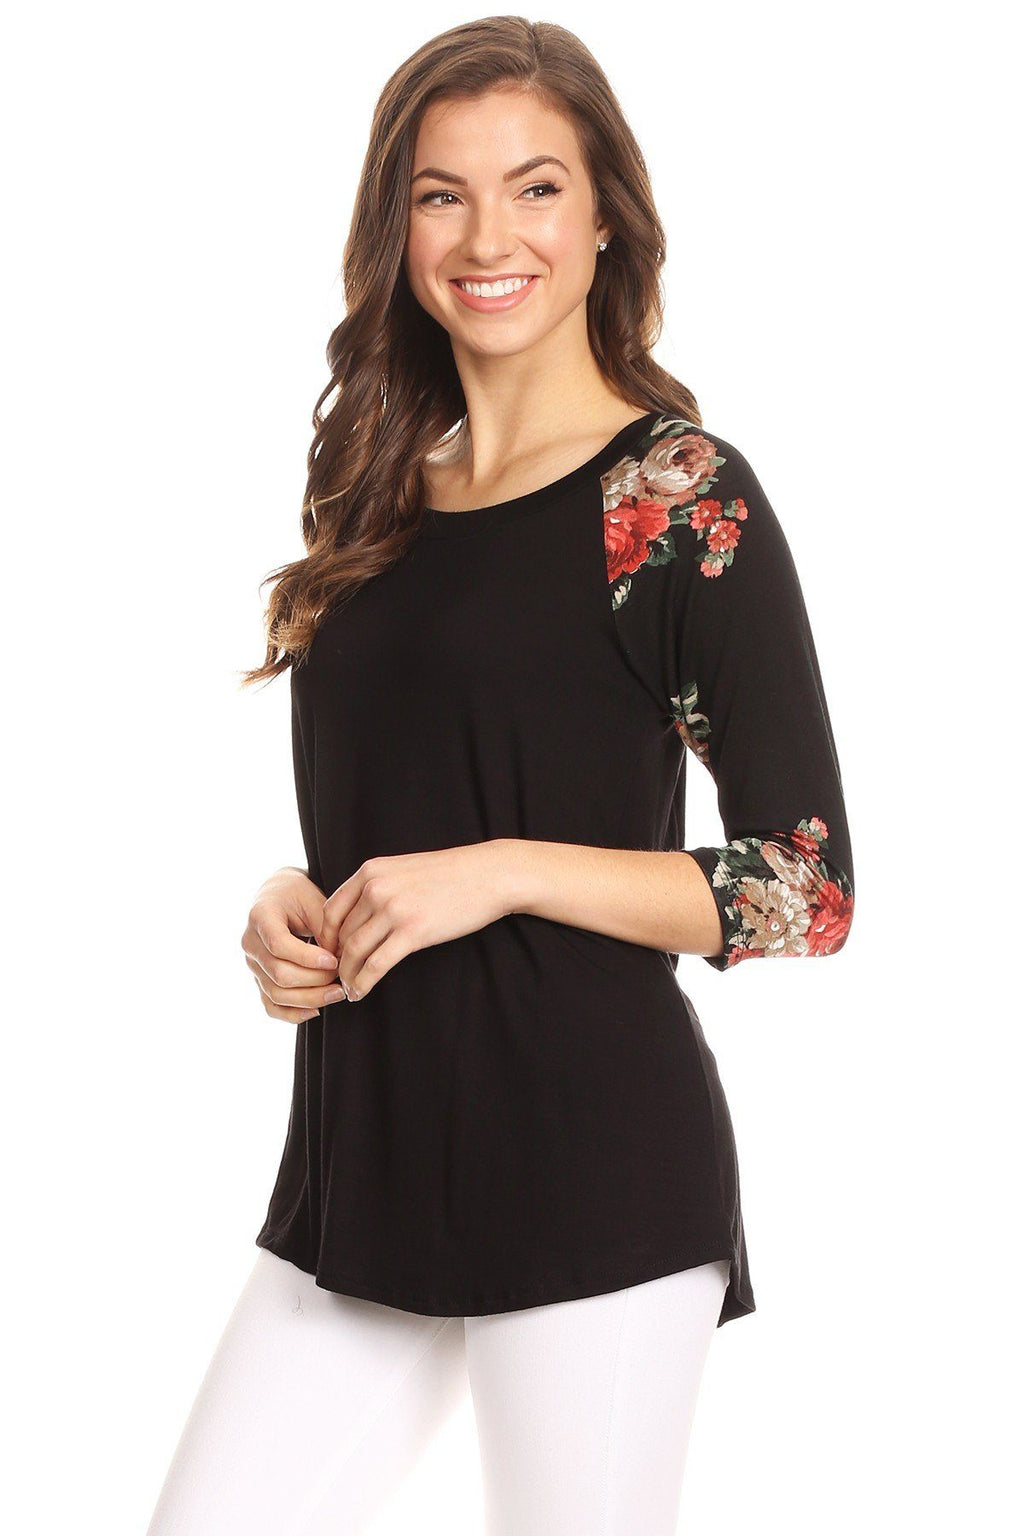 Women's Floral Top 3/4 Sleeve Black Shirt: S/M/L - MomMe and More Matching Mommy and Me Clothing